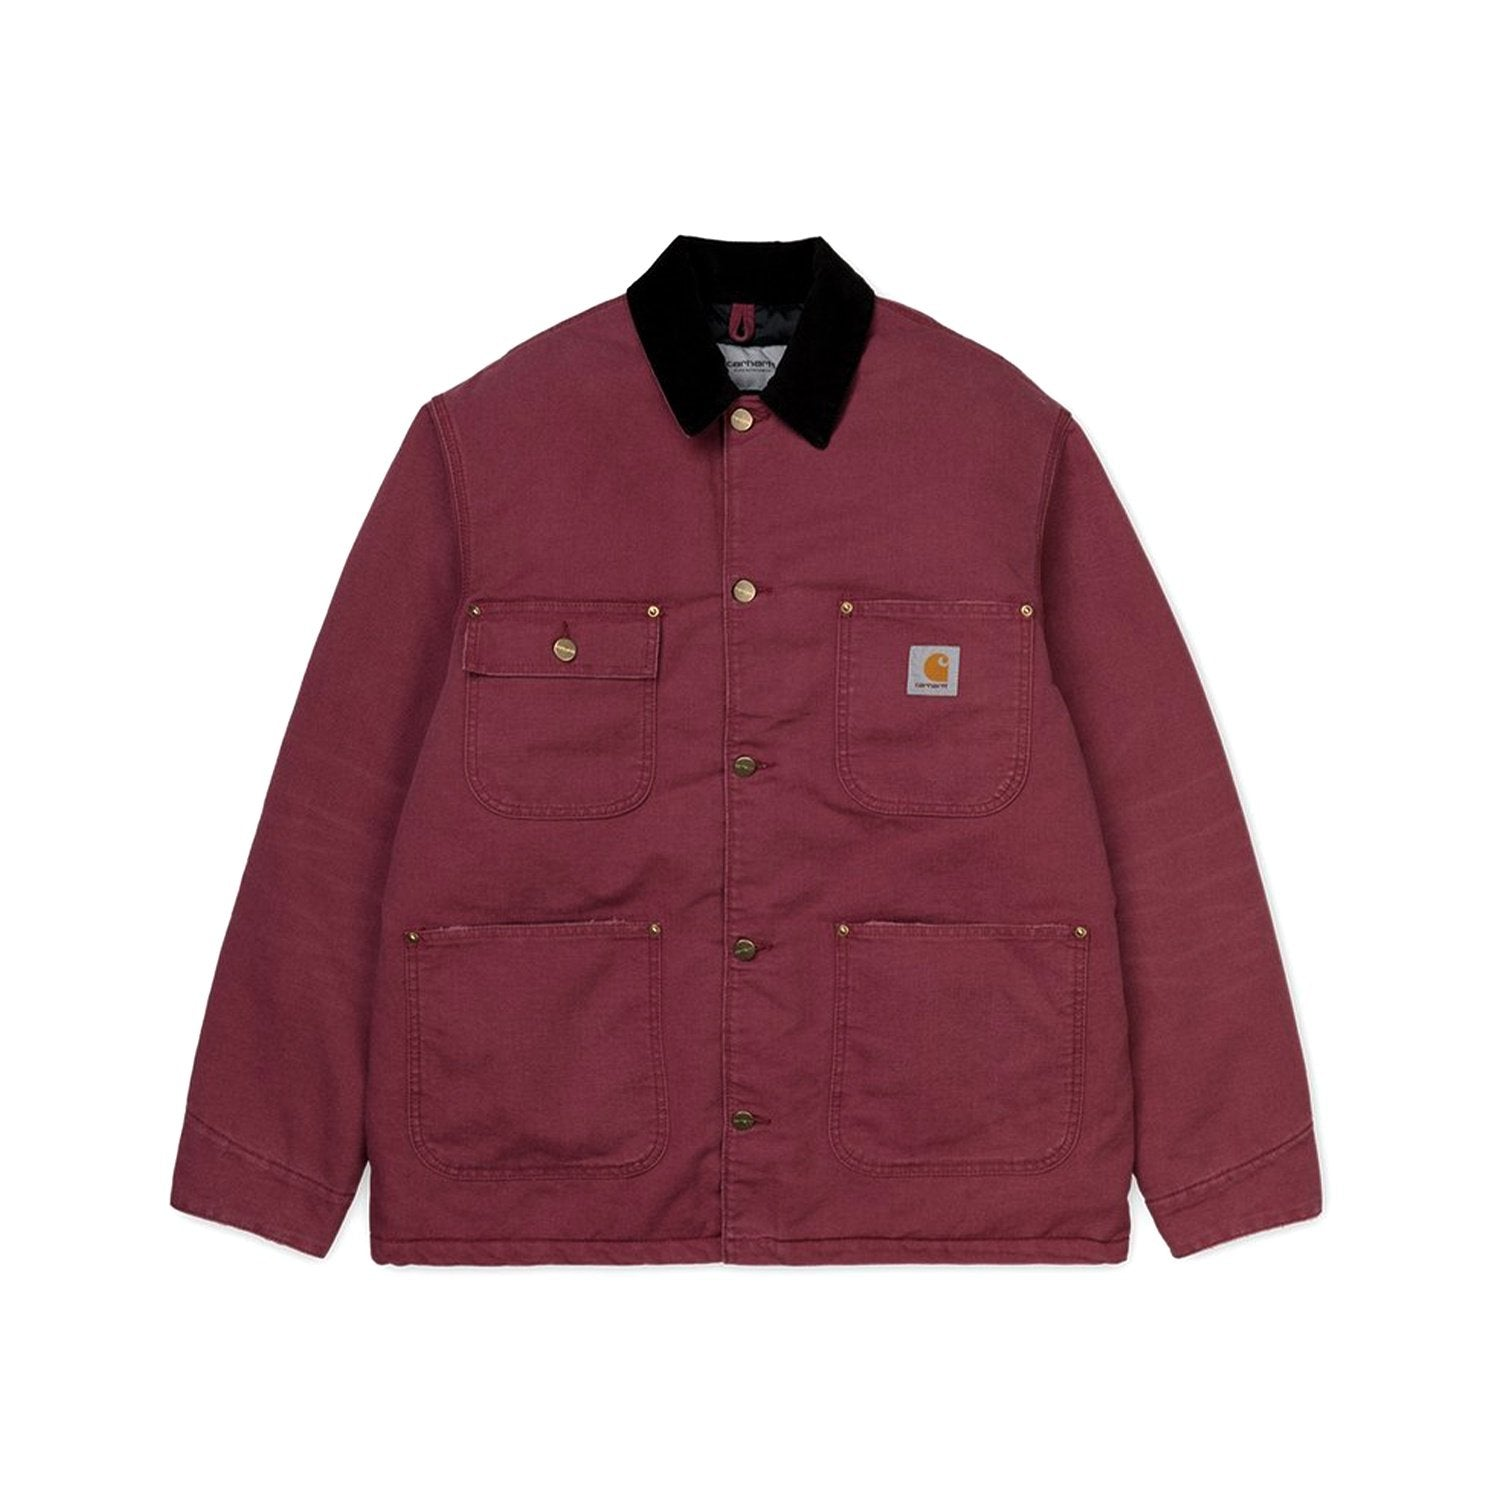 Carhartt WIP OG Detroit Jacket - Dusty Fuchsia/Black Age